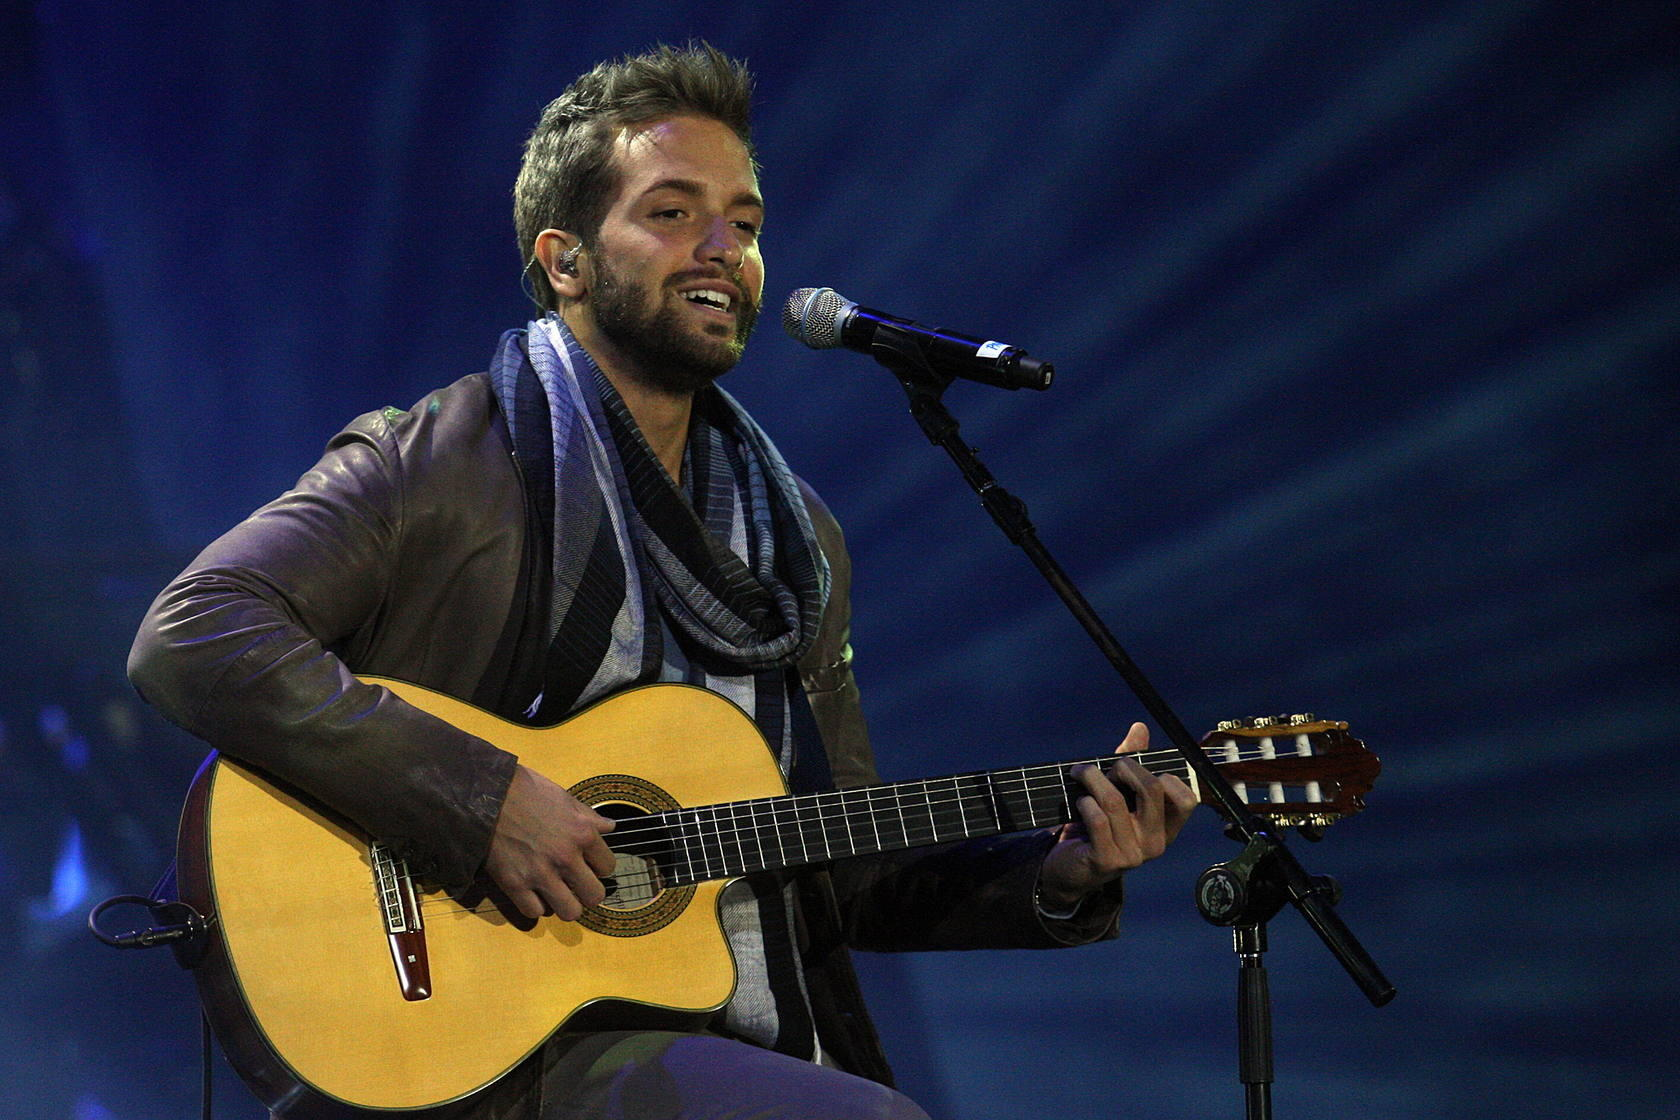 Pablo Albor&aacute;n triunfa en la clausura del Festival de Vi&ntilde;a del Mar